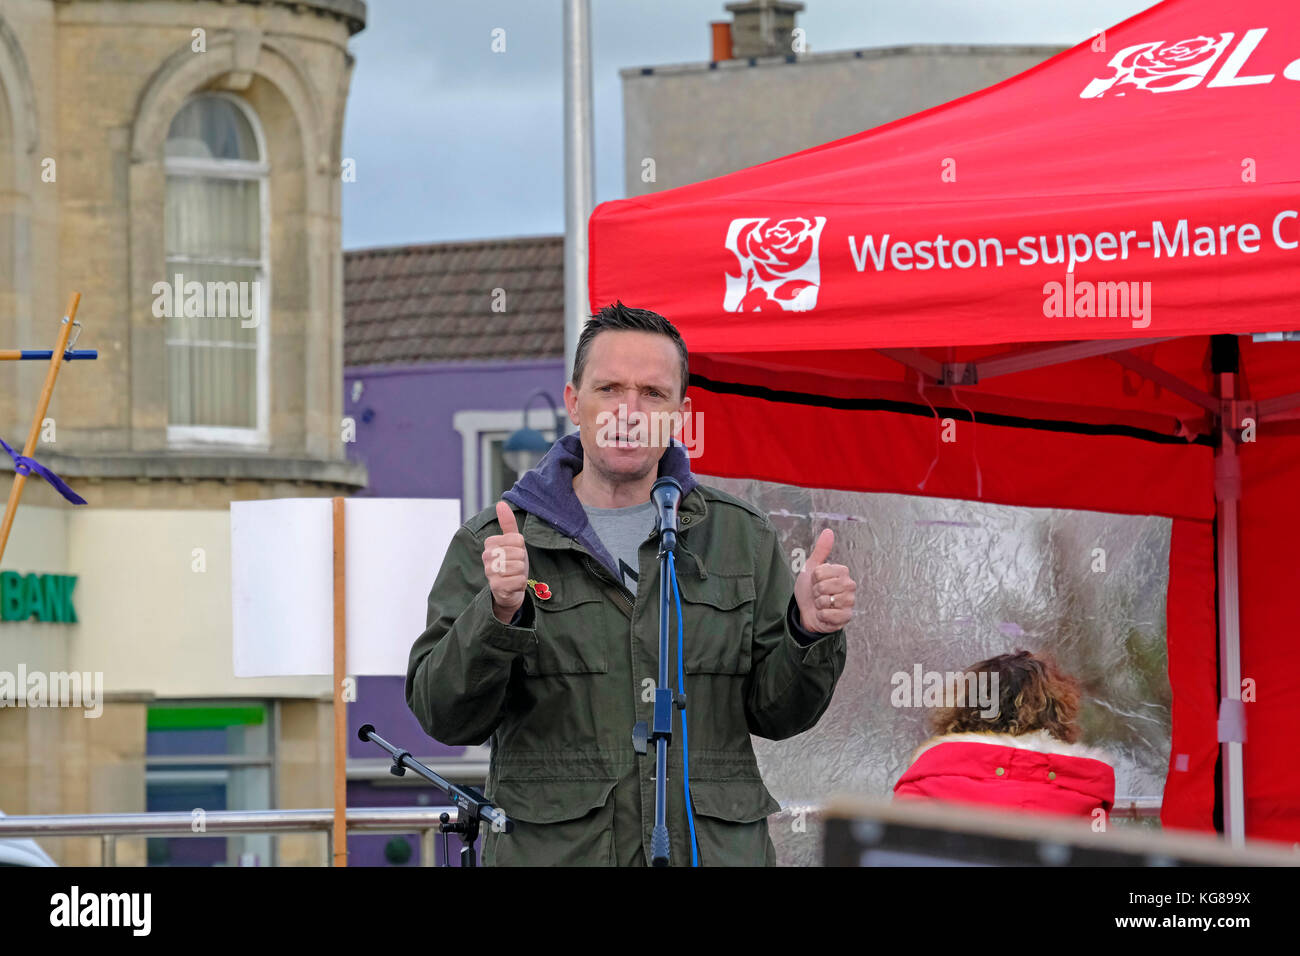 Weston-super-Mare, UK. 4th November, 2017. Councillor Mike Bell, Liberal Democrat leader on North Somerset Council, - Stock Image